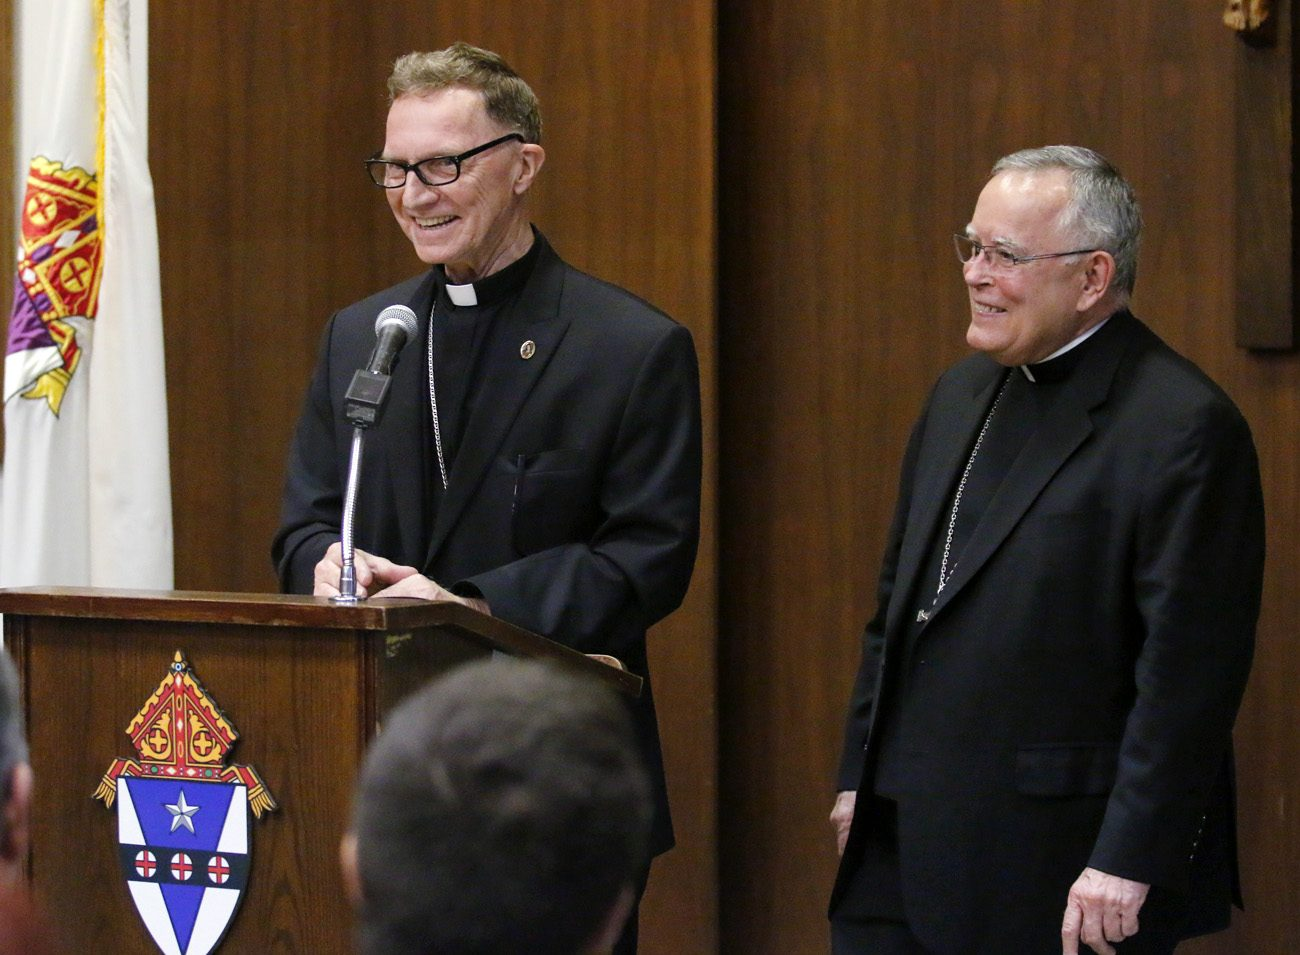 Archbishop Charles Chaput, right, introduces Bishop-elect Edward Deliman at a press conference May 31 at the archdiocesan Pastoral Center in Philadelphia. Pope Francis has appointed the 69-year-old archdiocesan priest a new auxiliary bishop of Philadelphia. (Photo by Sarah Webb)